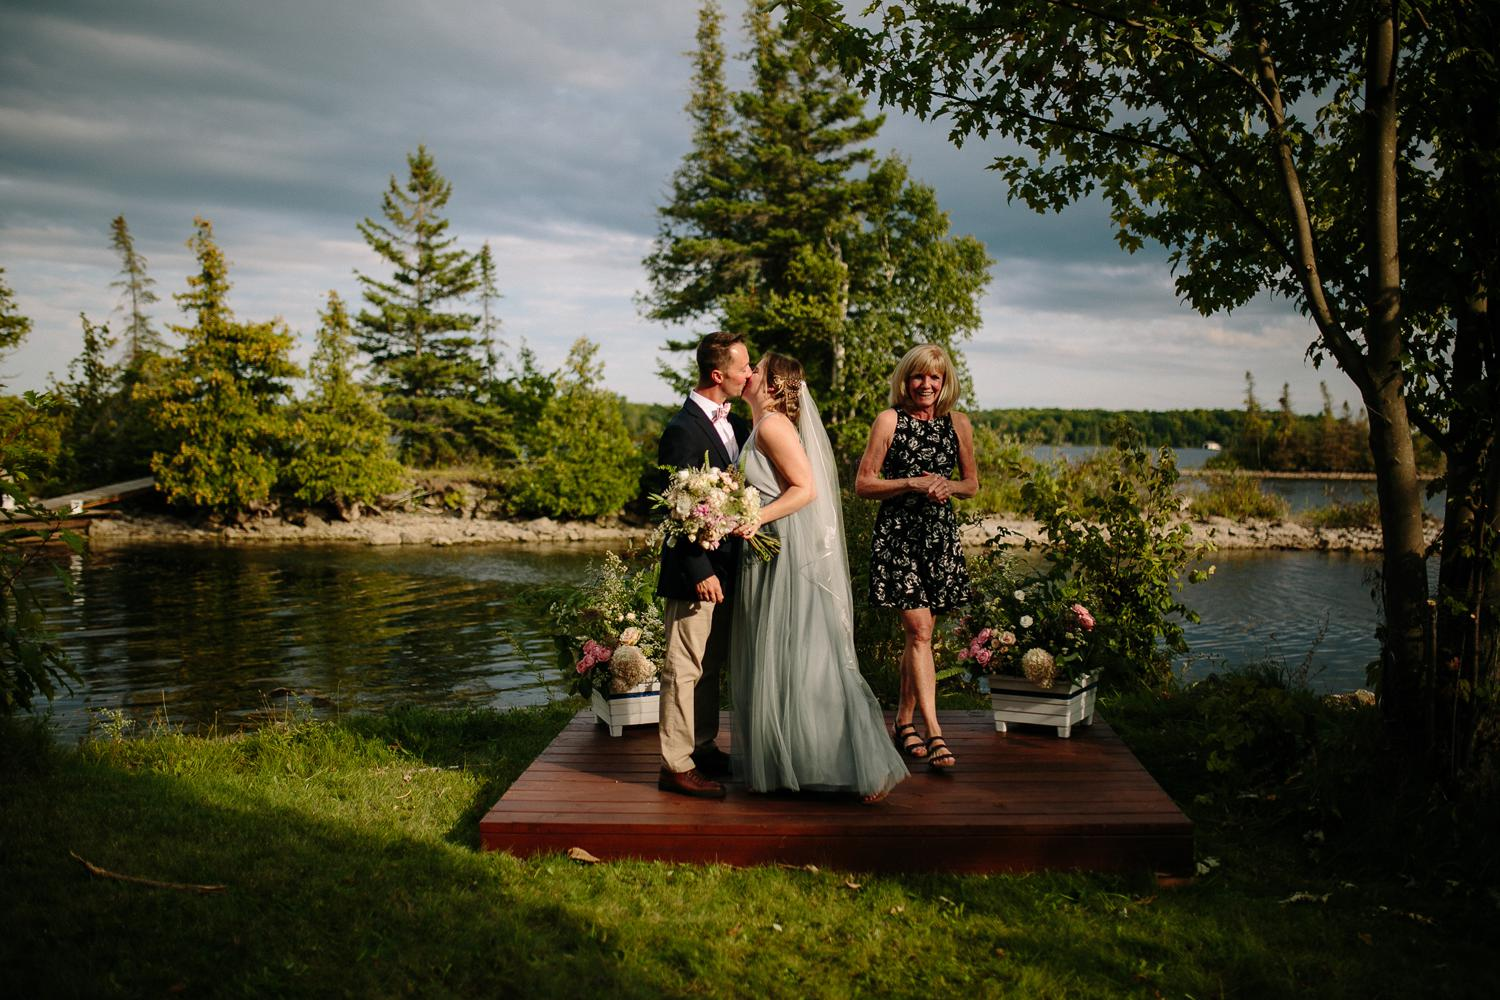 kerry ford photography - small intimate backyard rideau lake island wedding perth ontario-063.jpg